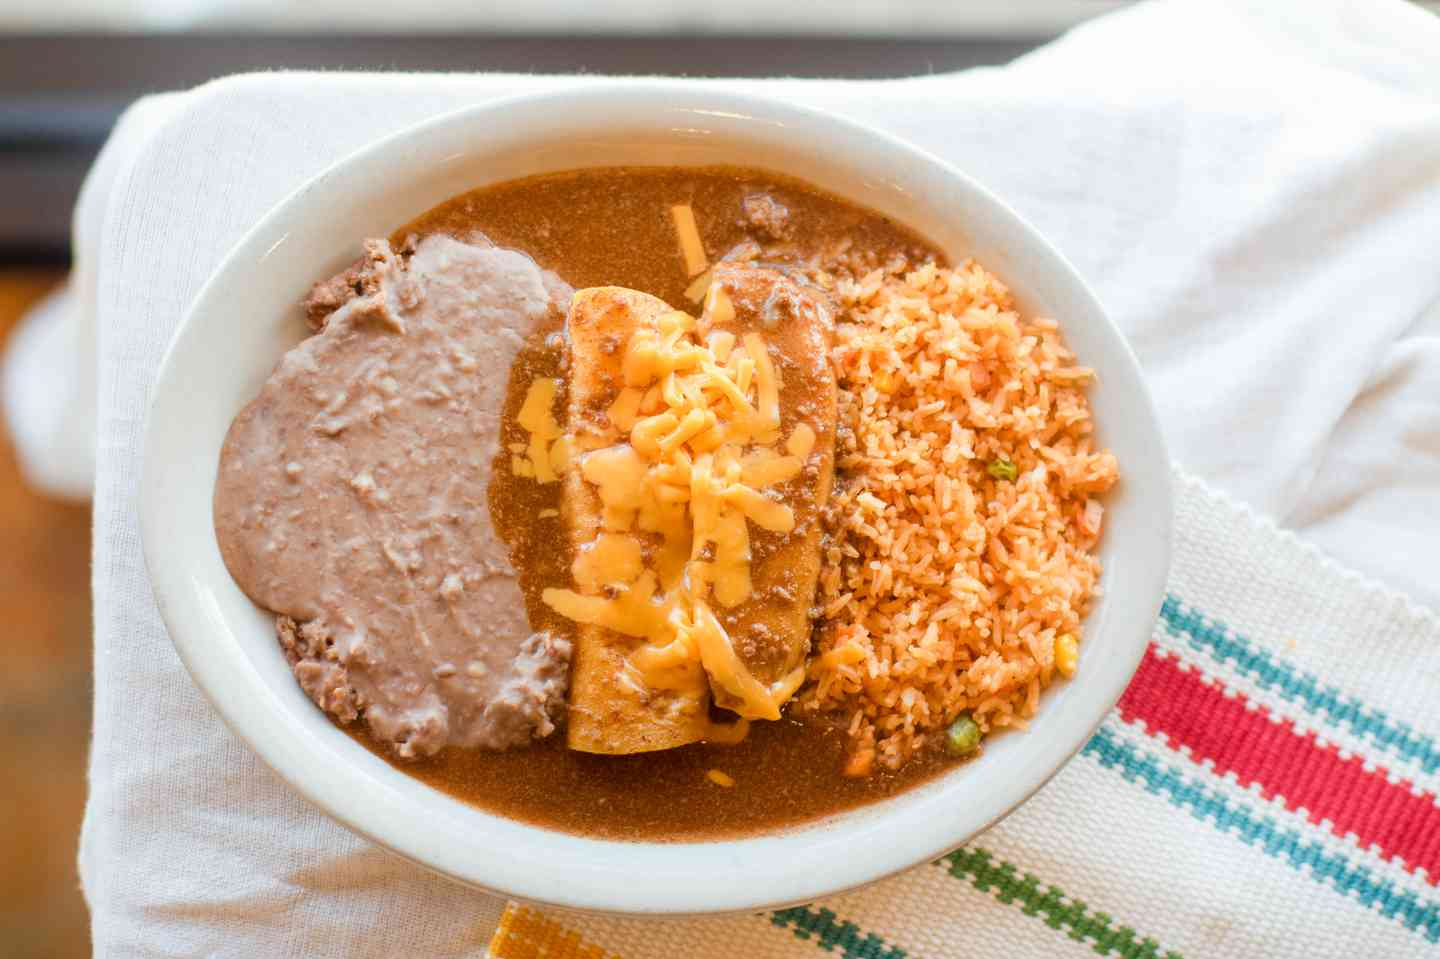 #7 Mexican Plate